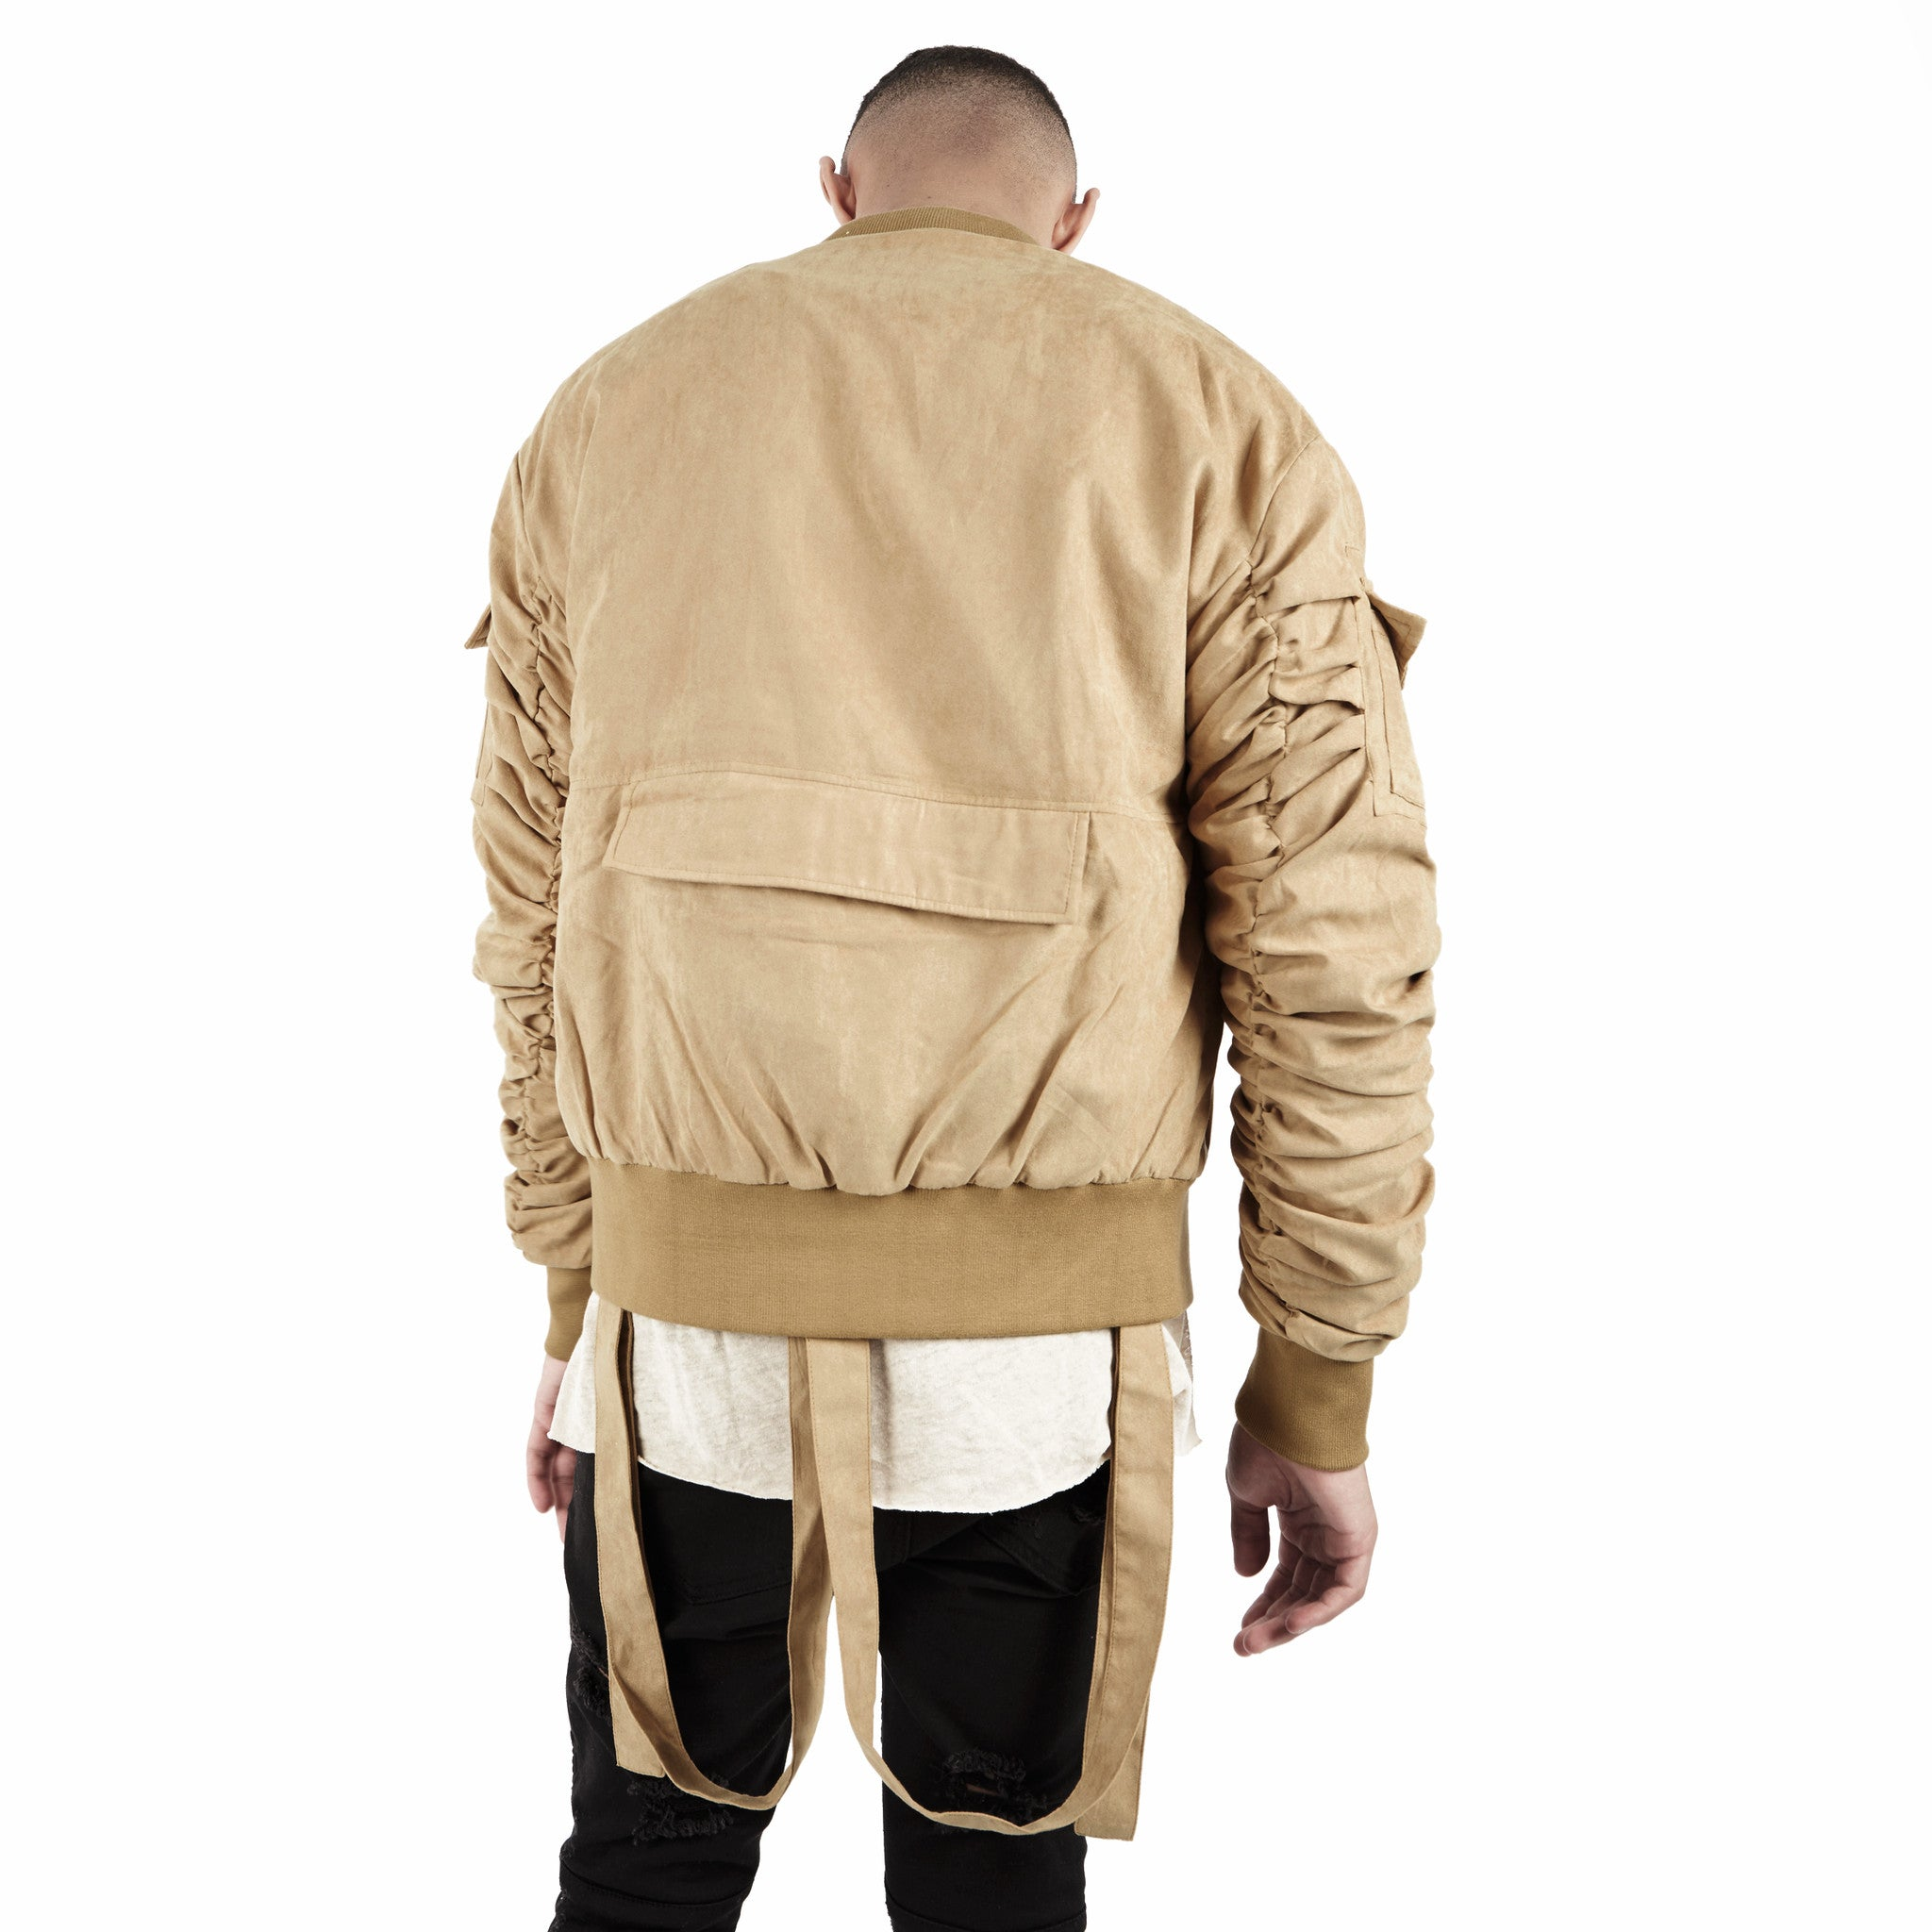 JK264 Suede Strapped Bomber Jacket - Beige - underated london - underatedco - 5